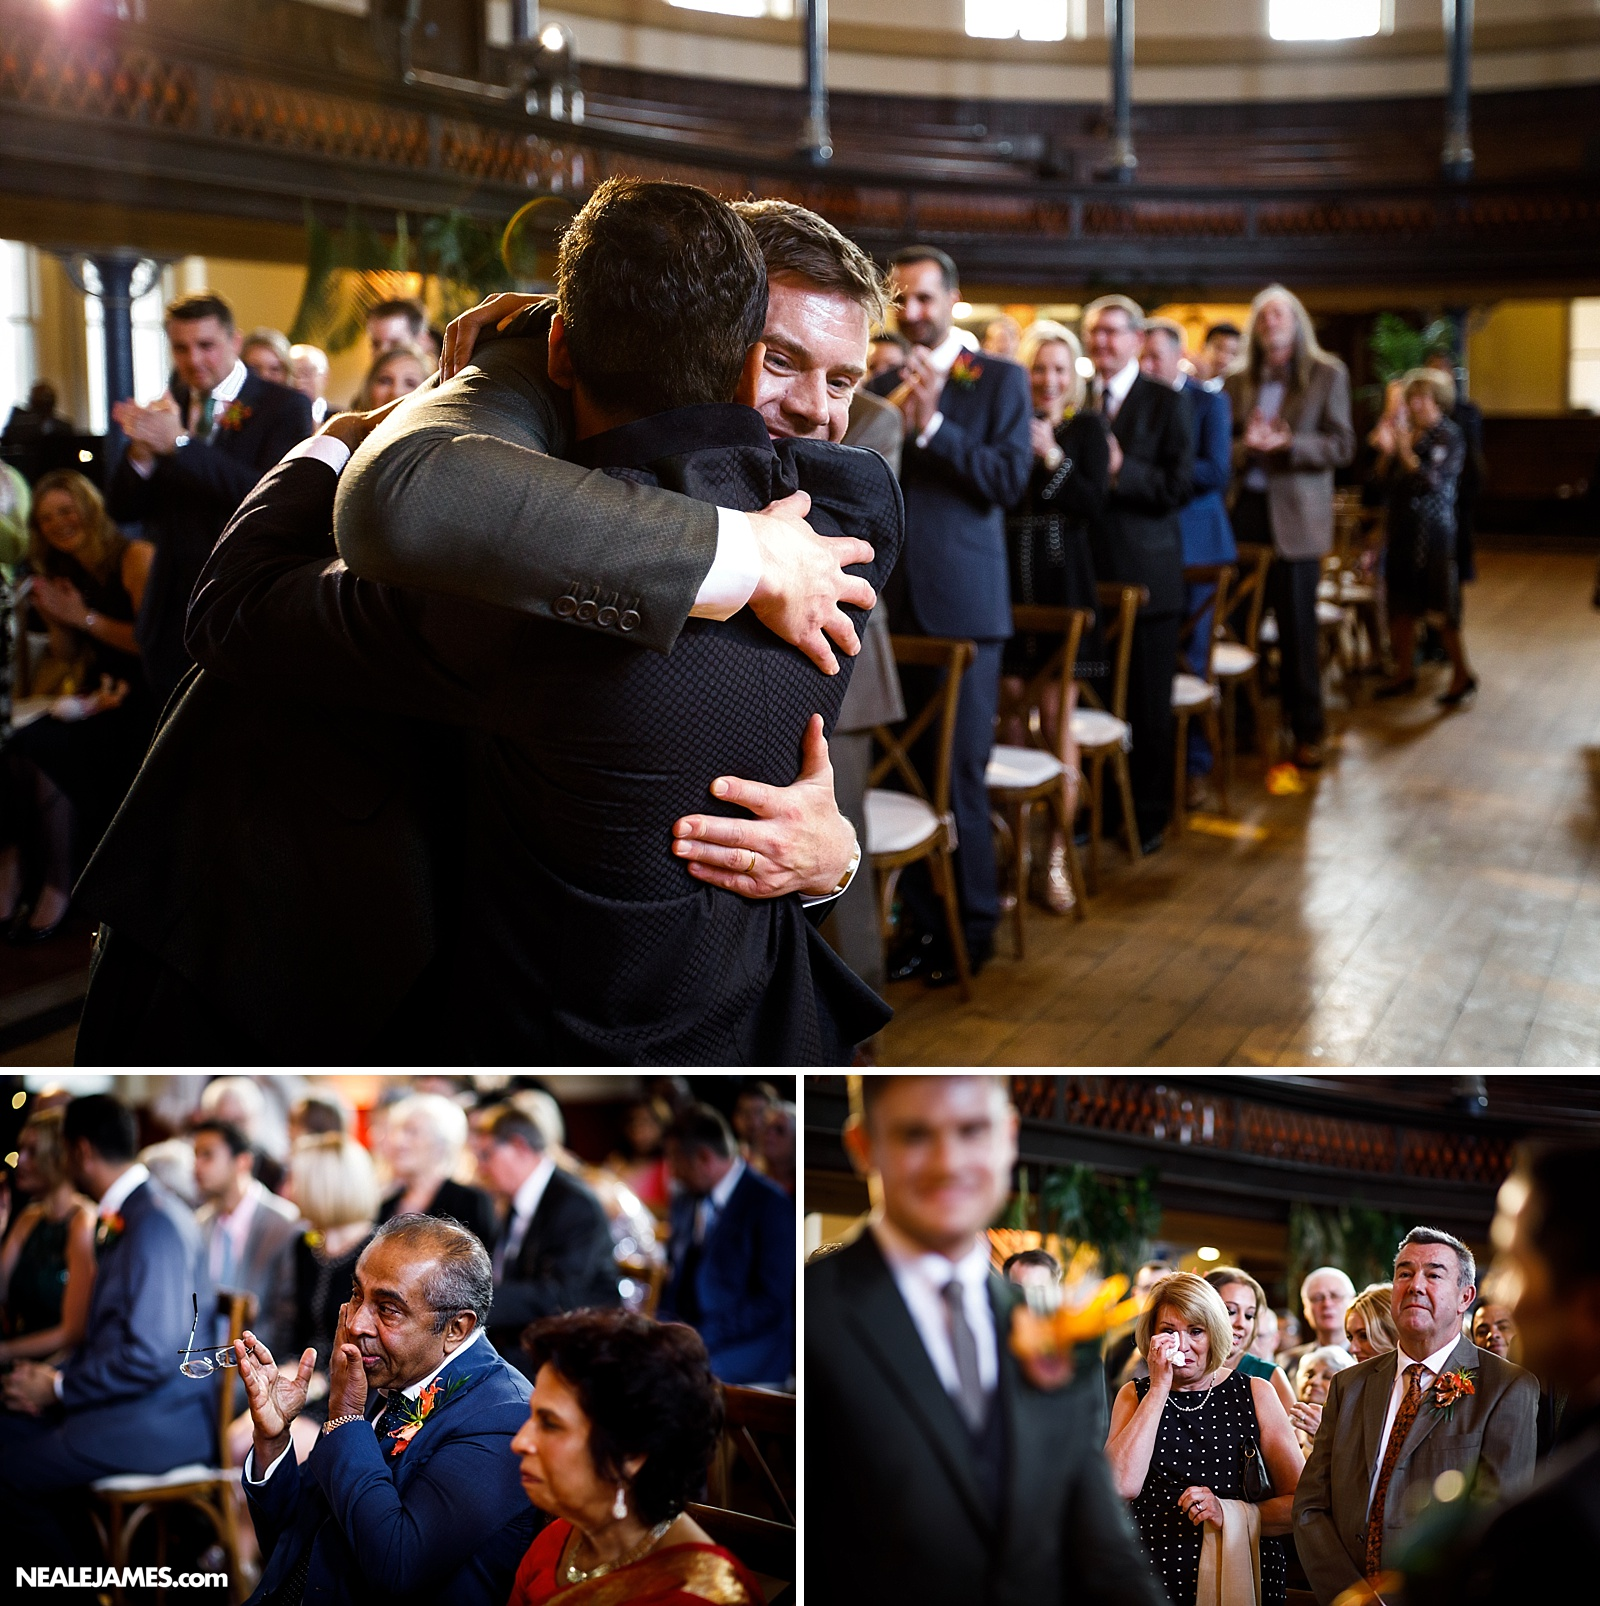 A husband embraces his husband at a wedding in London's Round Chapel